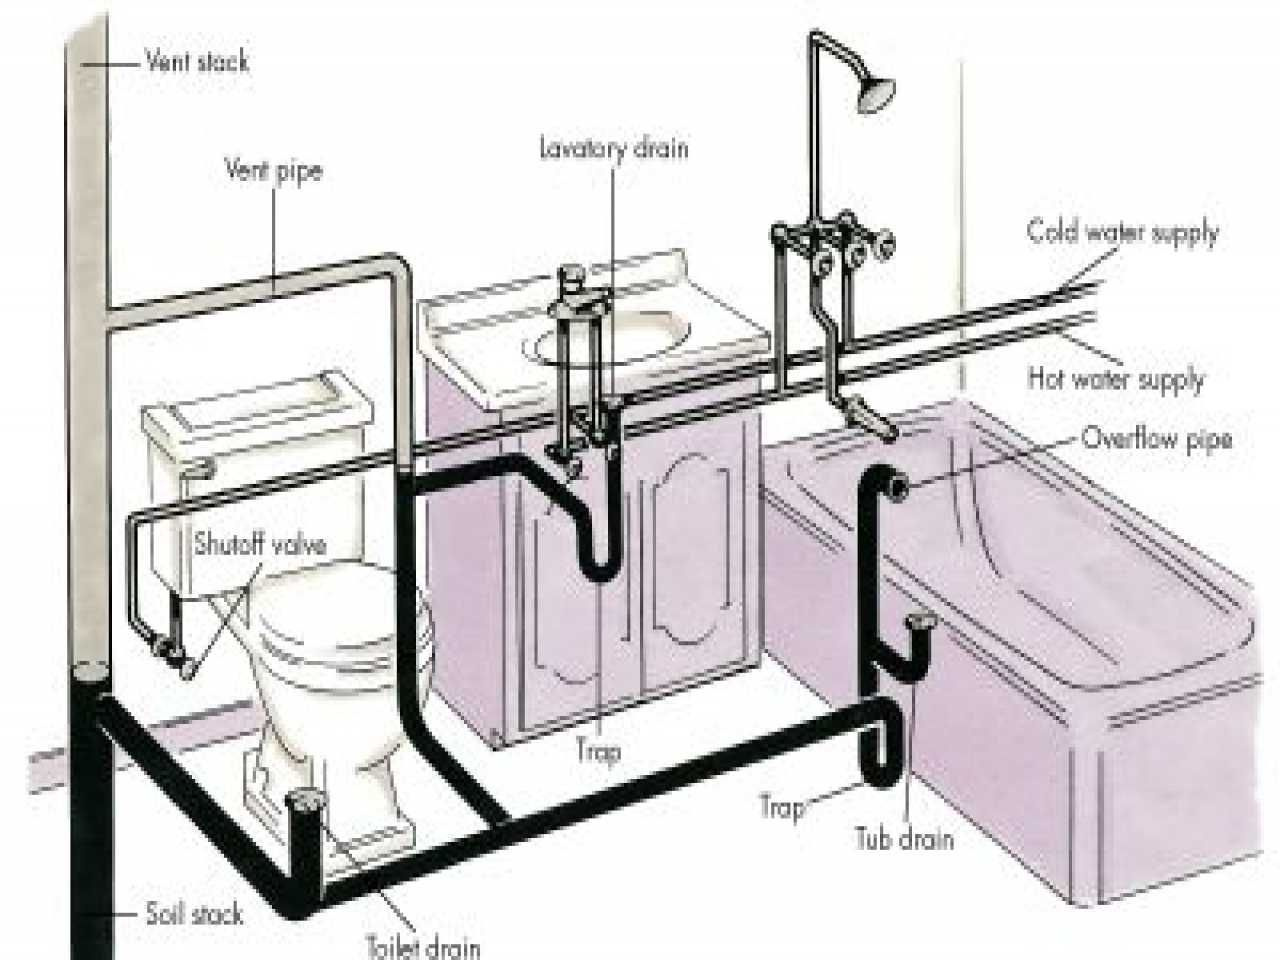 Bathroom Plumbing Diagram For Rough In Asianpaintsshadecard Asianpaintscatalogueforexteriorwalls Asianpaintsshad Diy Plumbing Bathroom Plumbing Home Repairs